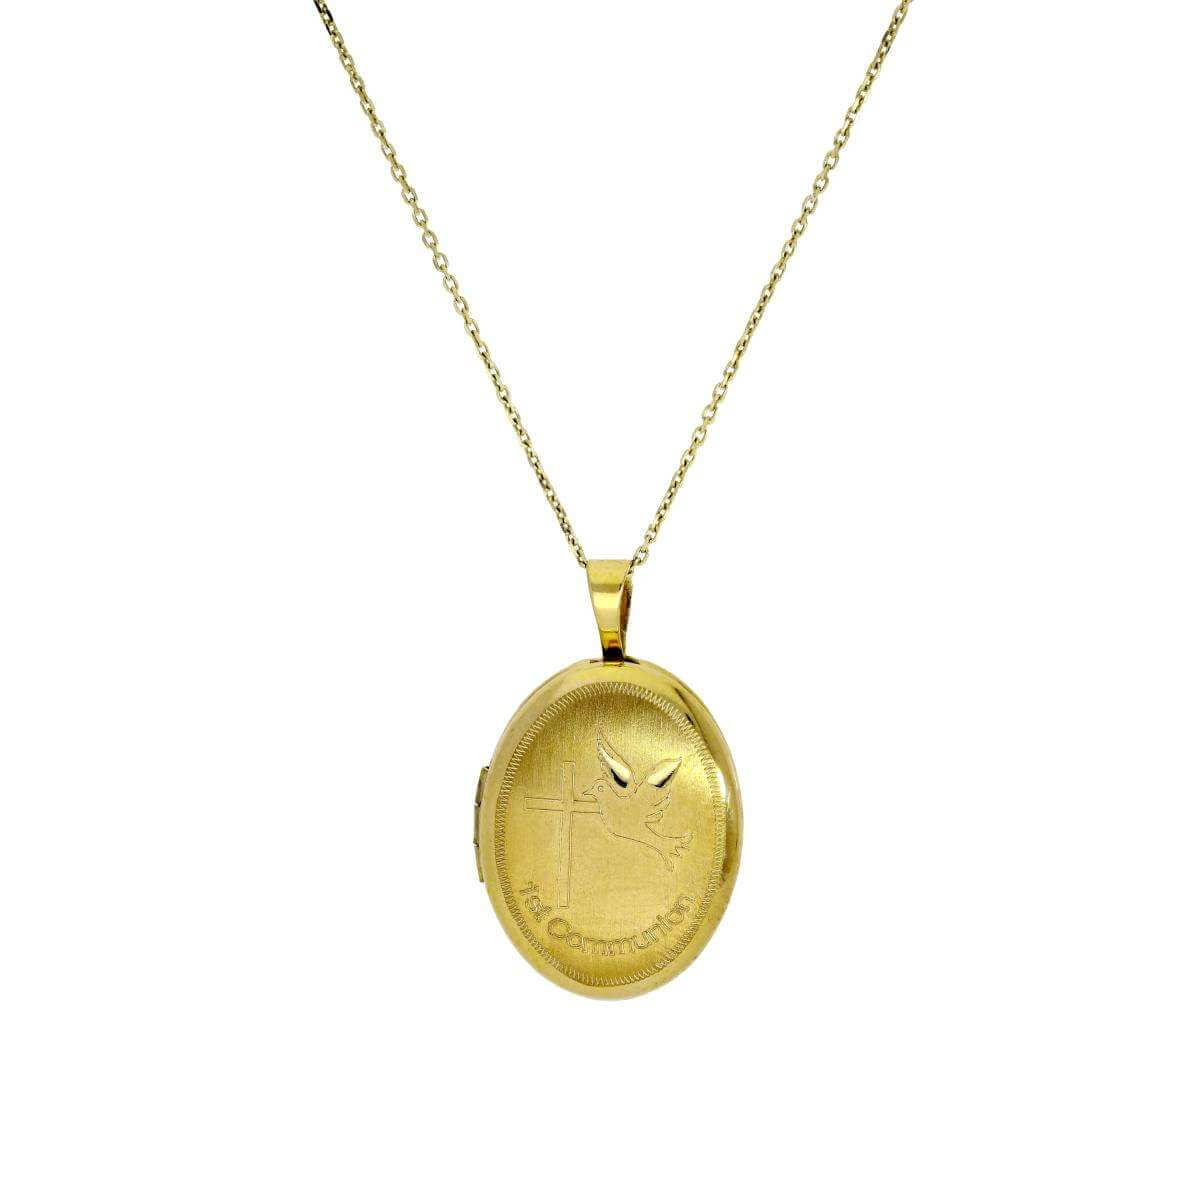 9ct Gold Engravable Oval First Communion Locket on Chain 16 - 20 Inches